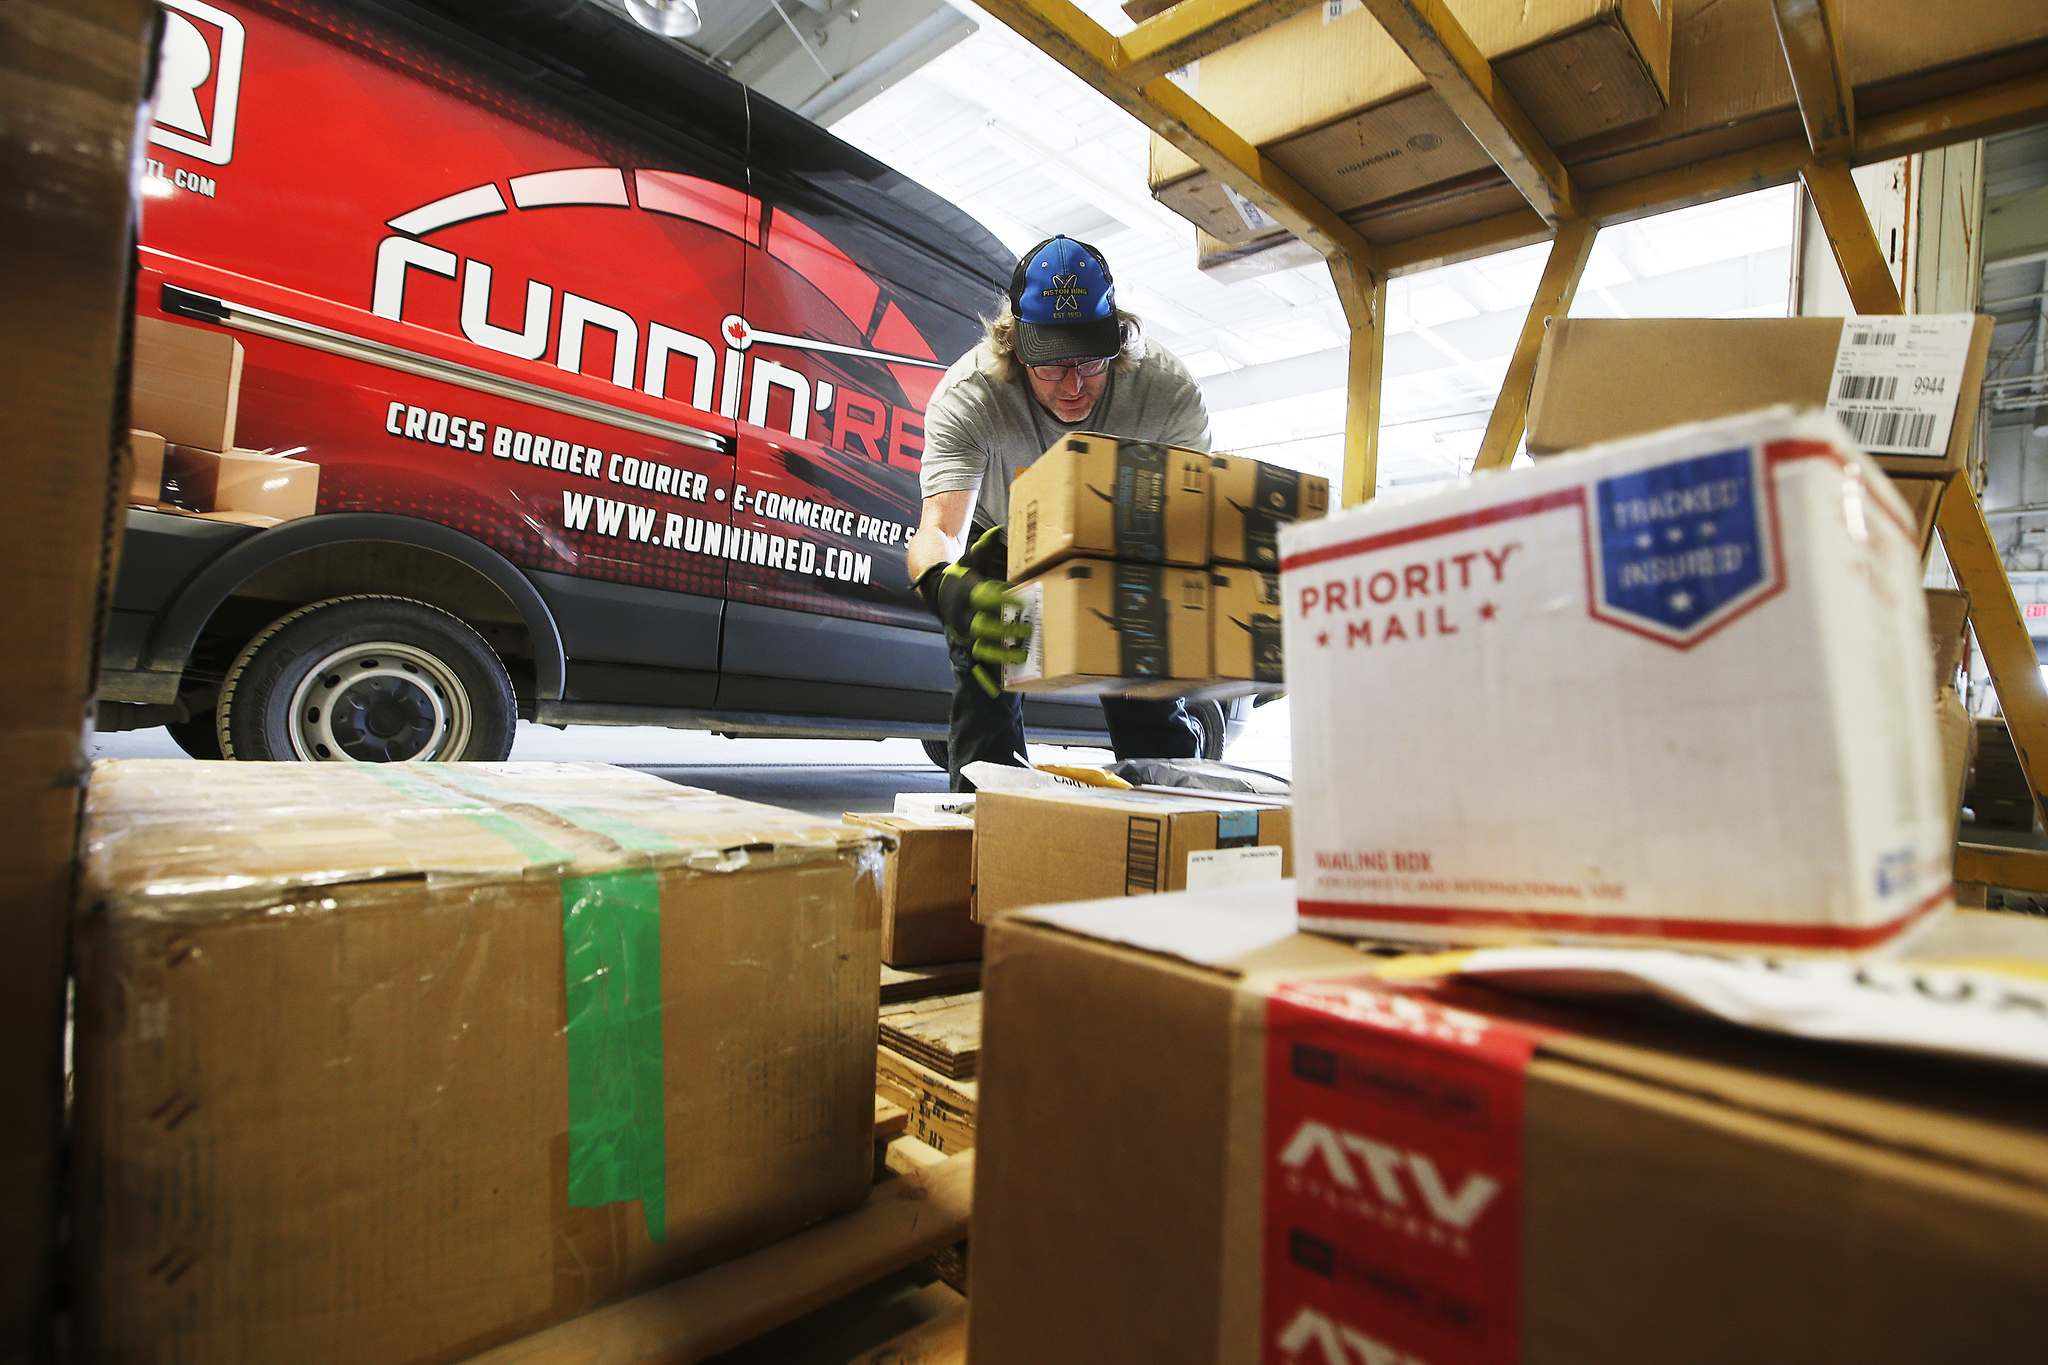 JOHN WOODS / WINNIPEG FREE PRESS</p><p>Mike Caners of Runnin' Red, a cross-border courier, unloads packages from Emerson in their warehouse. Runnin' Red co-owner Trevor Froese says that currently they are probably doing four to five times the normal volume.</p>